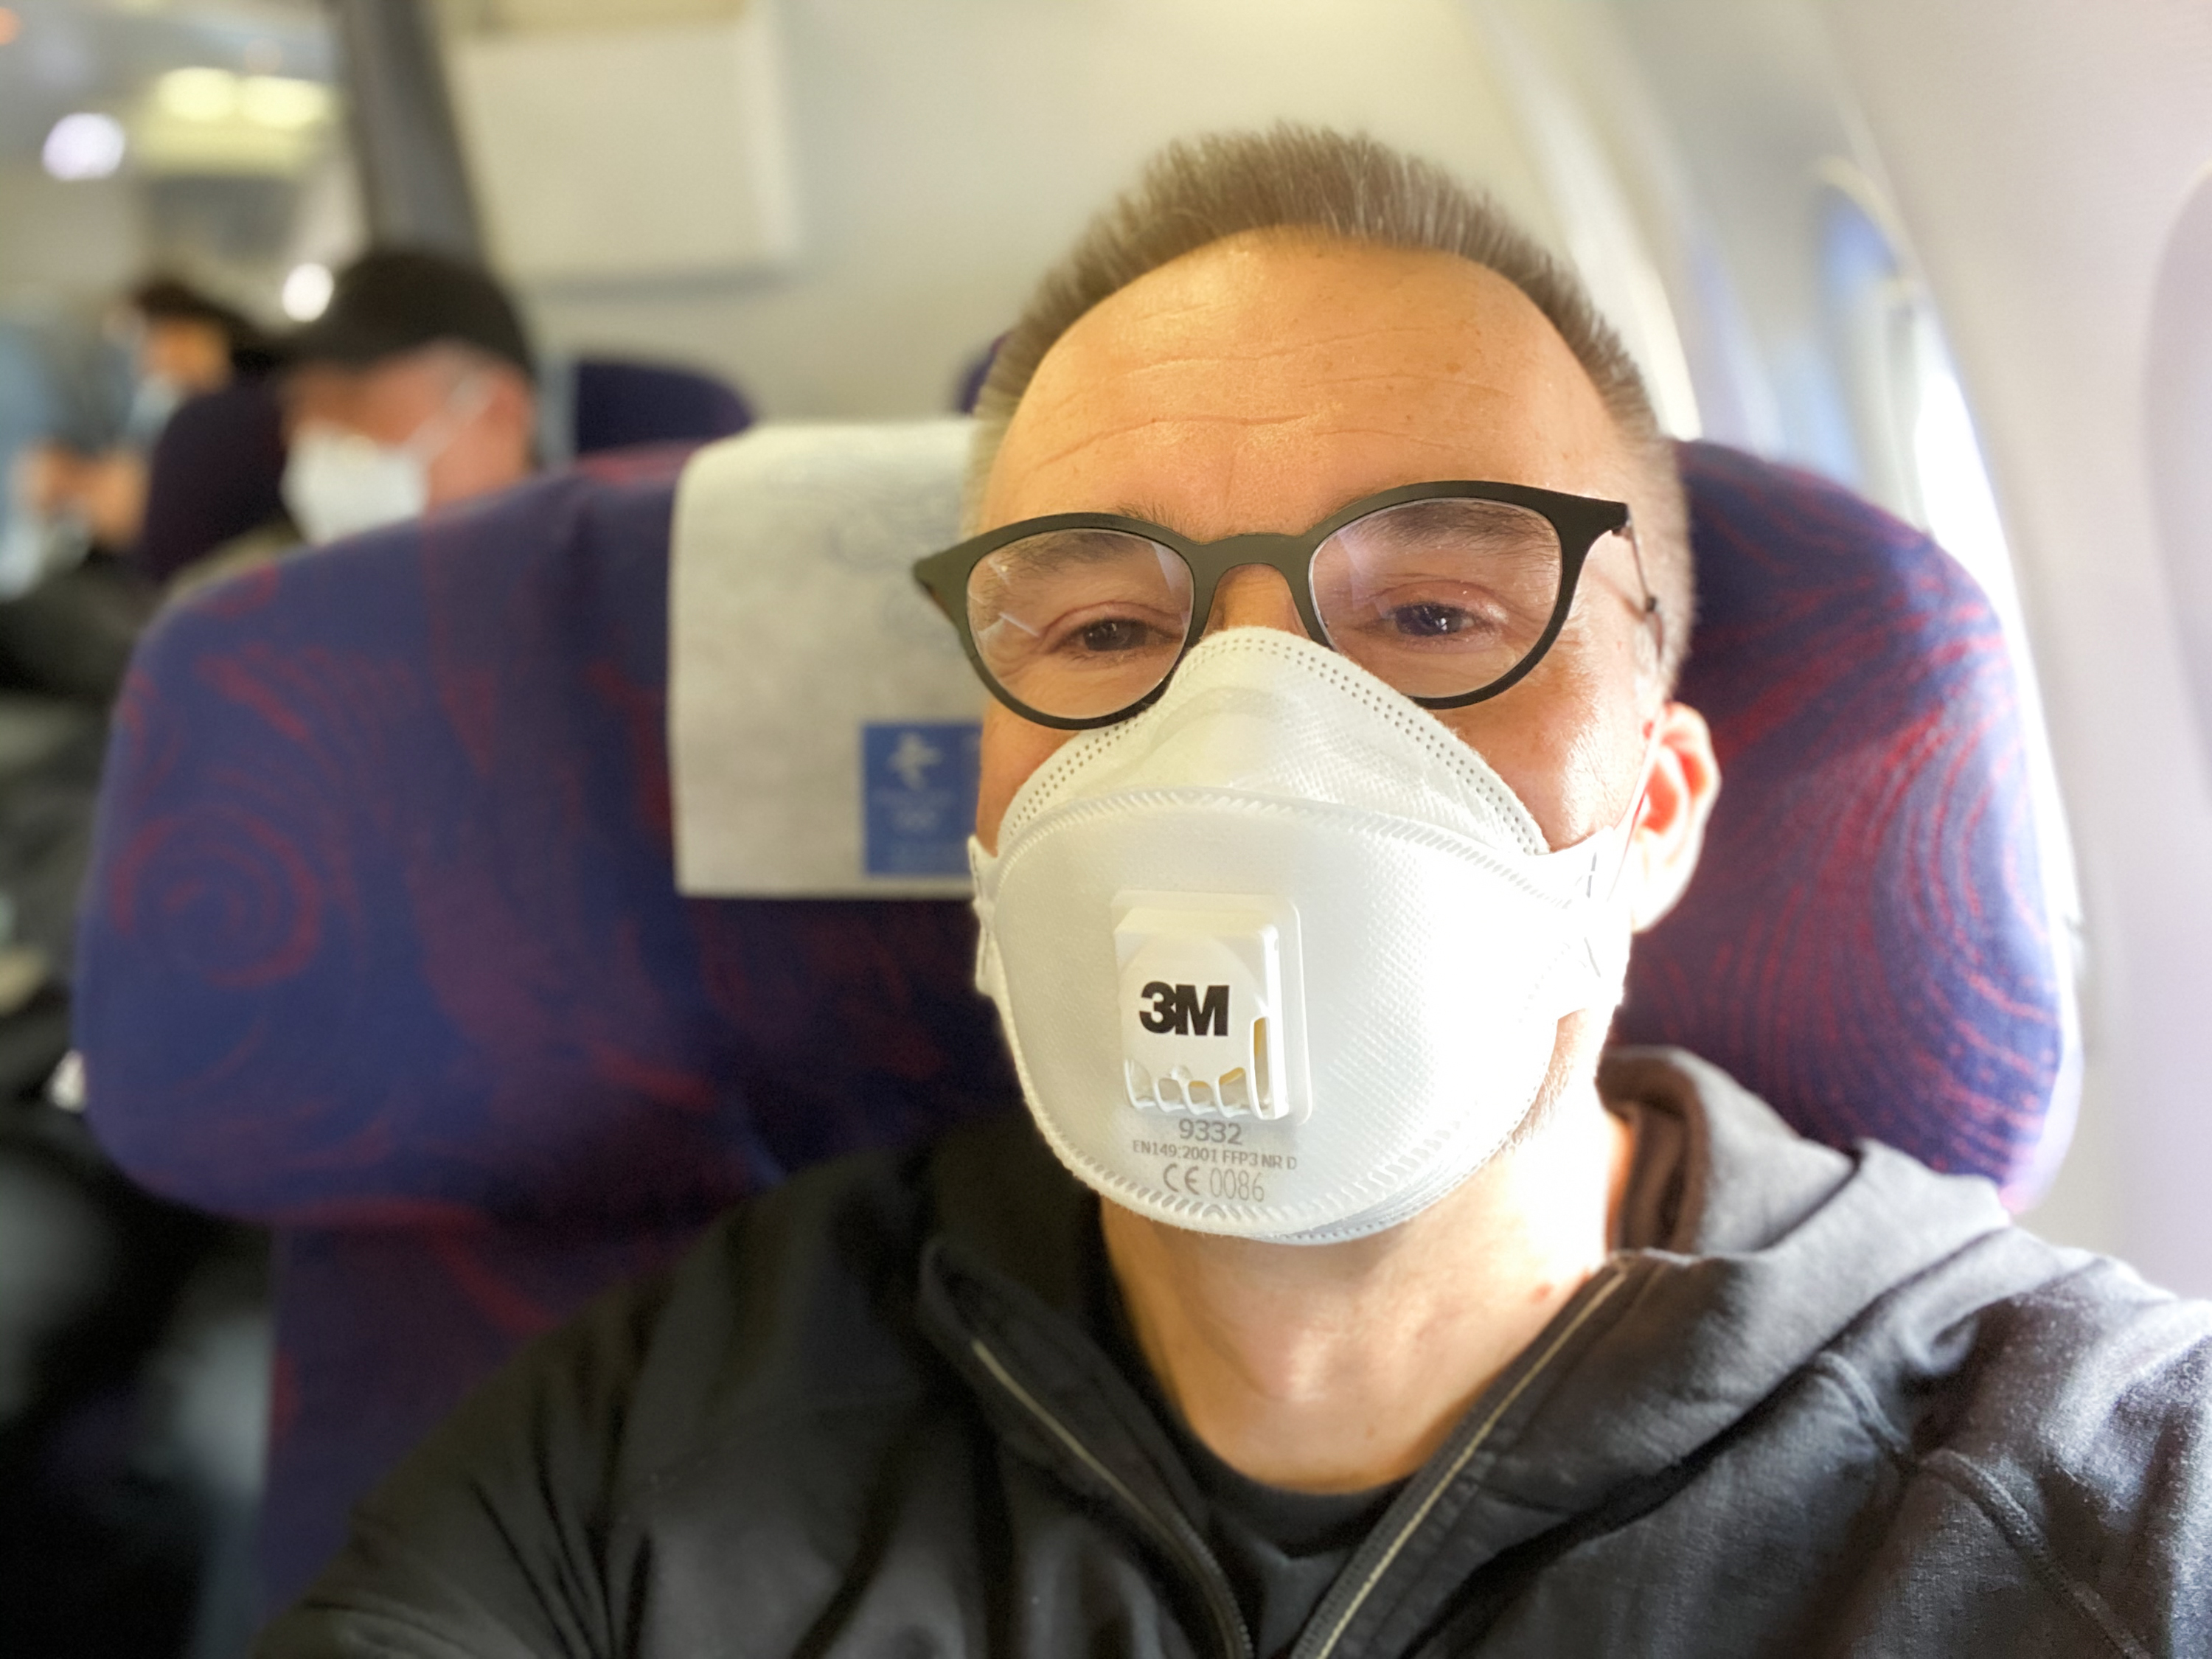 CBC correspondent Saša Petricic aboard one of the last flights from Beijing to Hong Kong before strict quarantine rules started for arrivals into Hong Kong in February. (Saša Petricic/CBC)